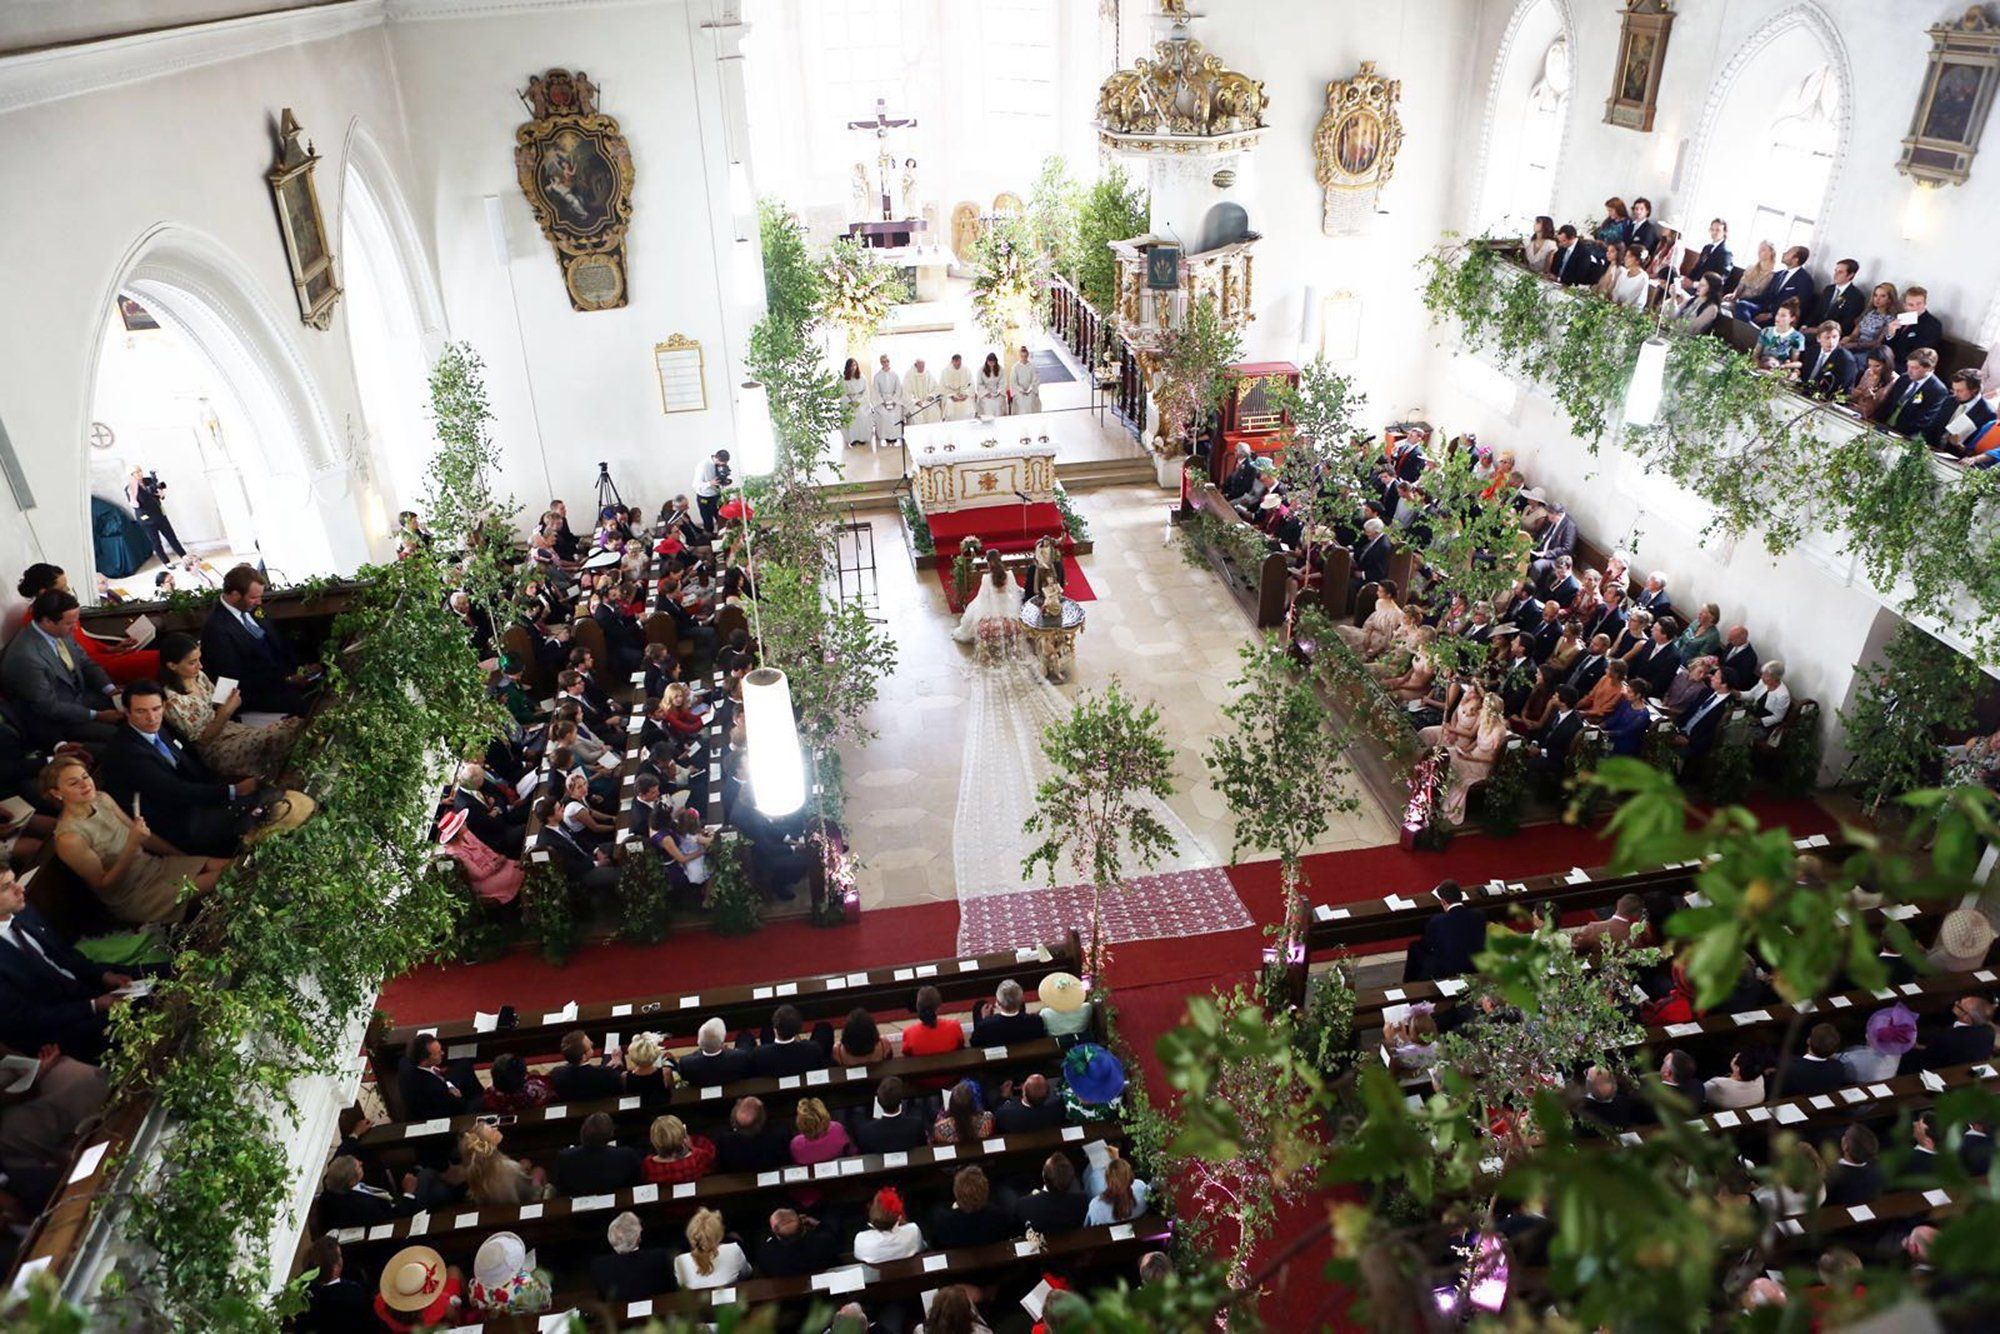 Eight hundred seated guests in the church—the ceremony is about to begin.